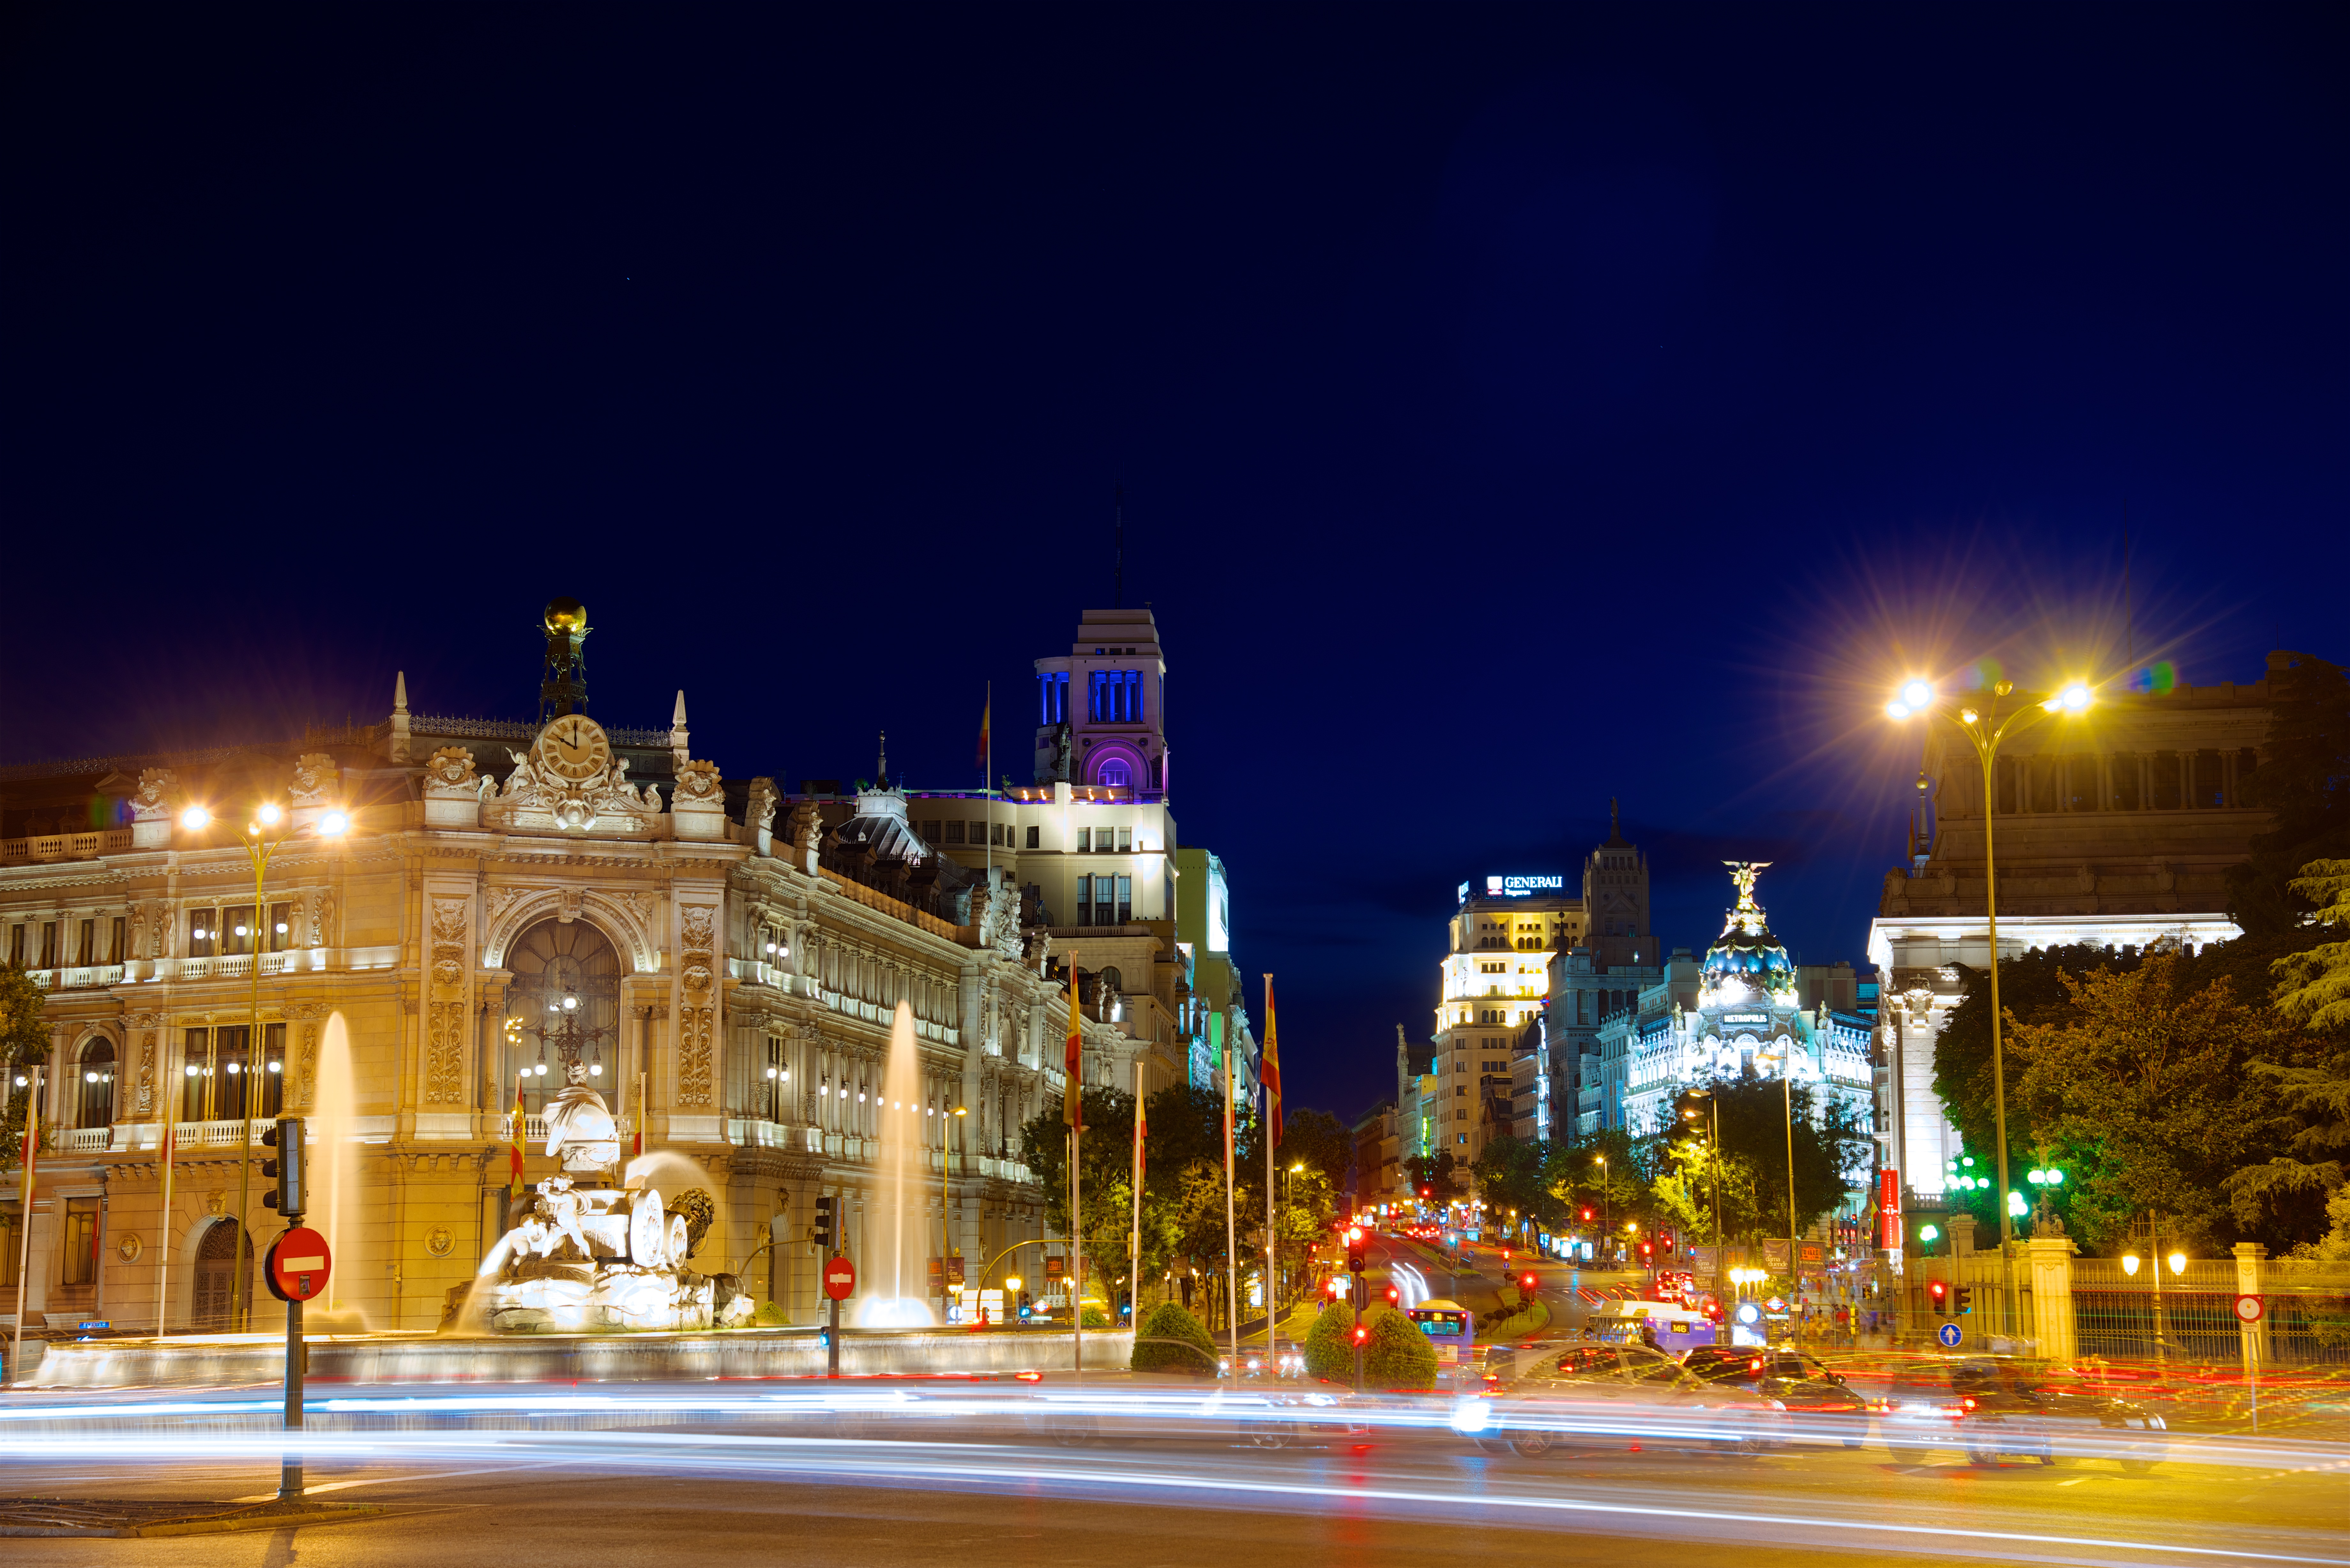 Imagebox_-_Madrid_City_Hall_-29.jpg?1548991915